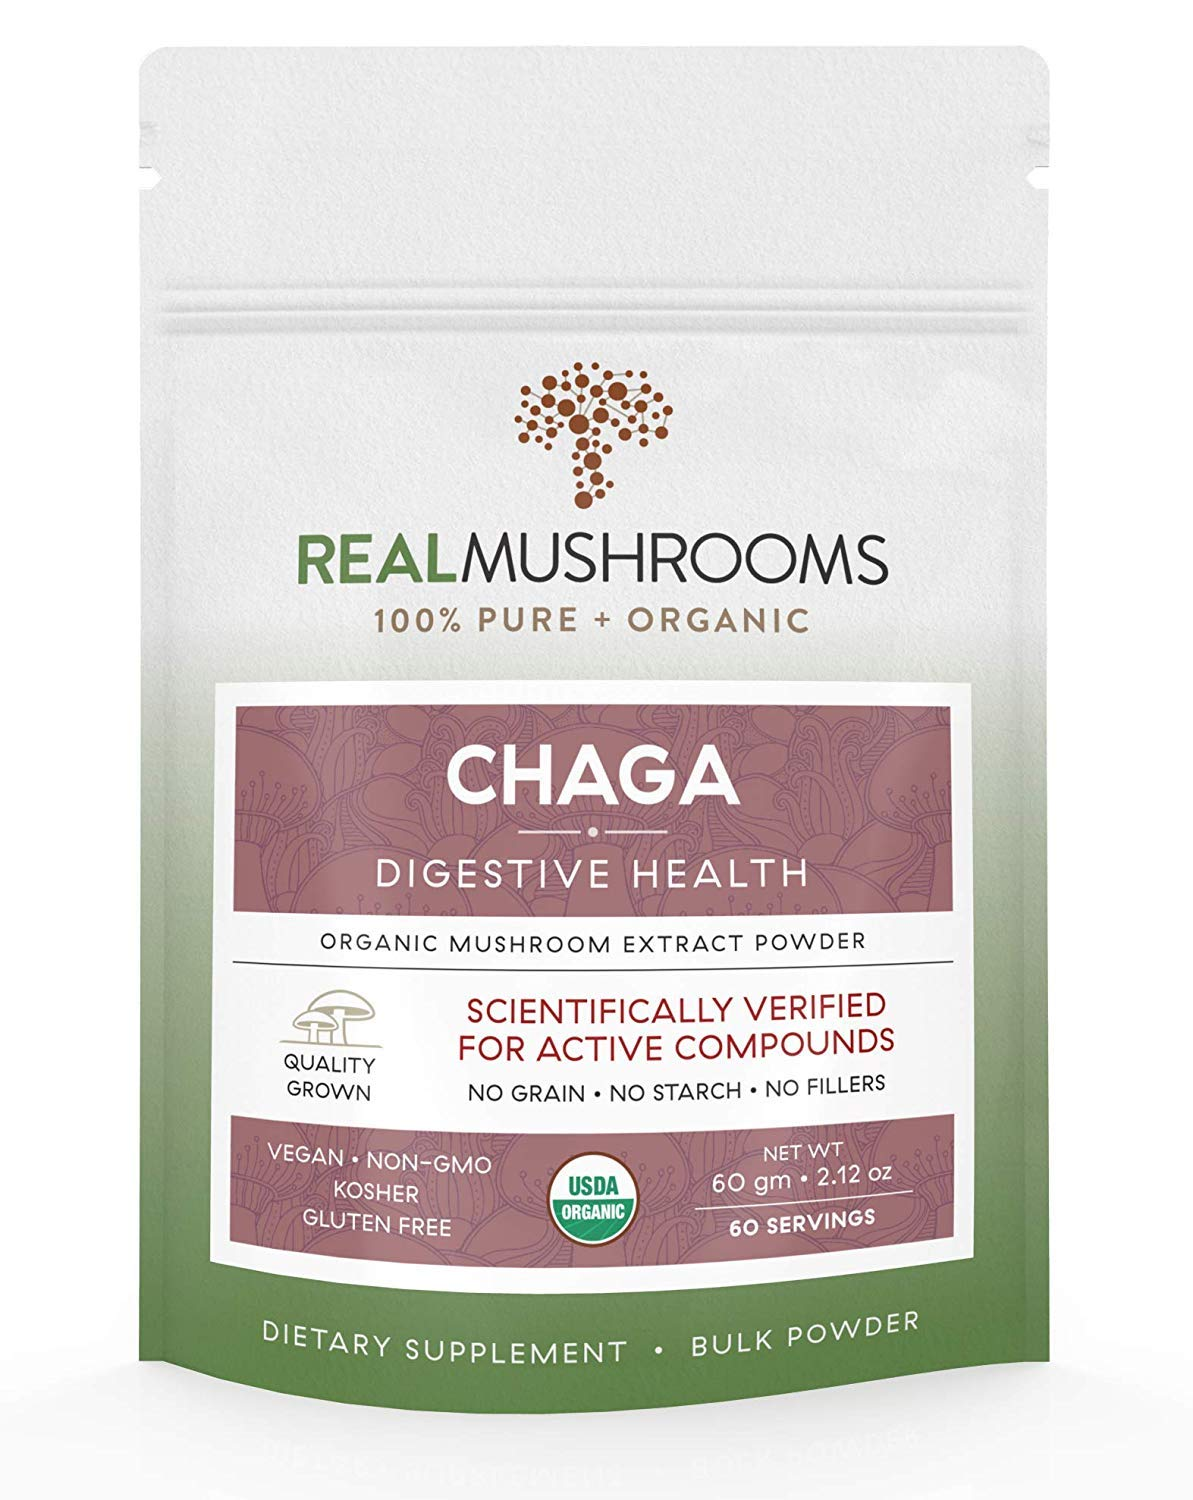 Chaga Mushroom Powder, 60g Vegan & Non-GMO Chaga Extract Digestive Health Supplement, Chaga Mushroom Supplement Powder, No Fillers, 60 Day Supply